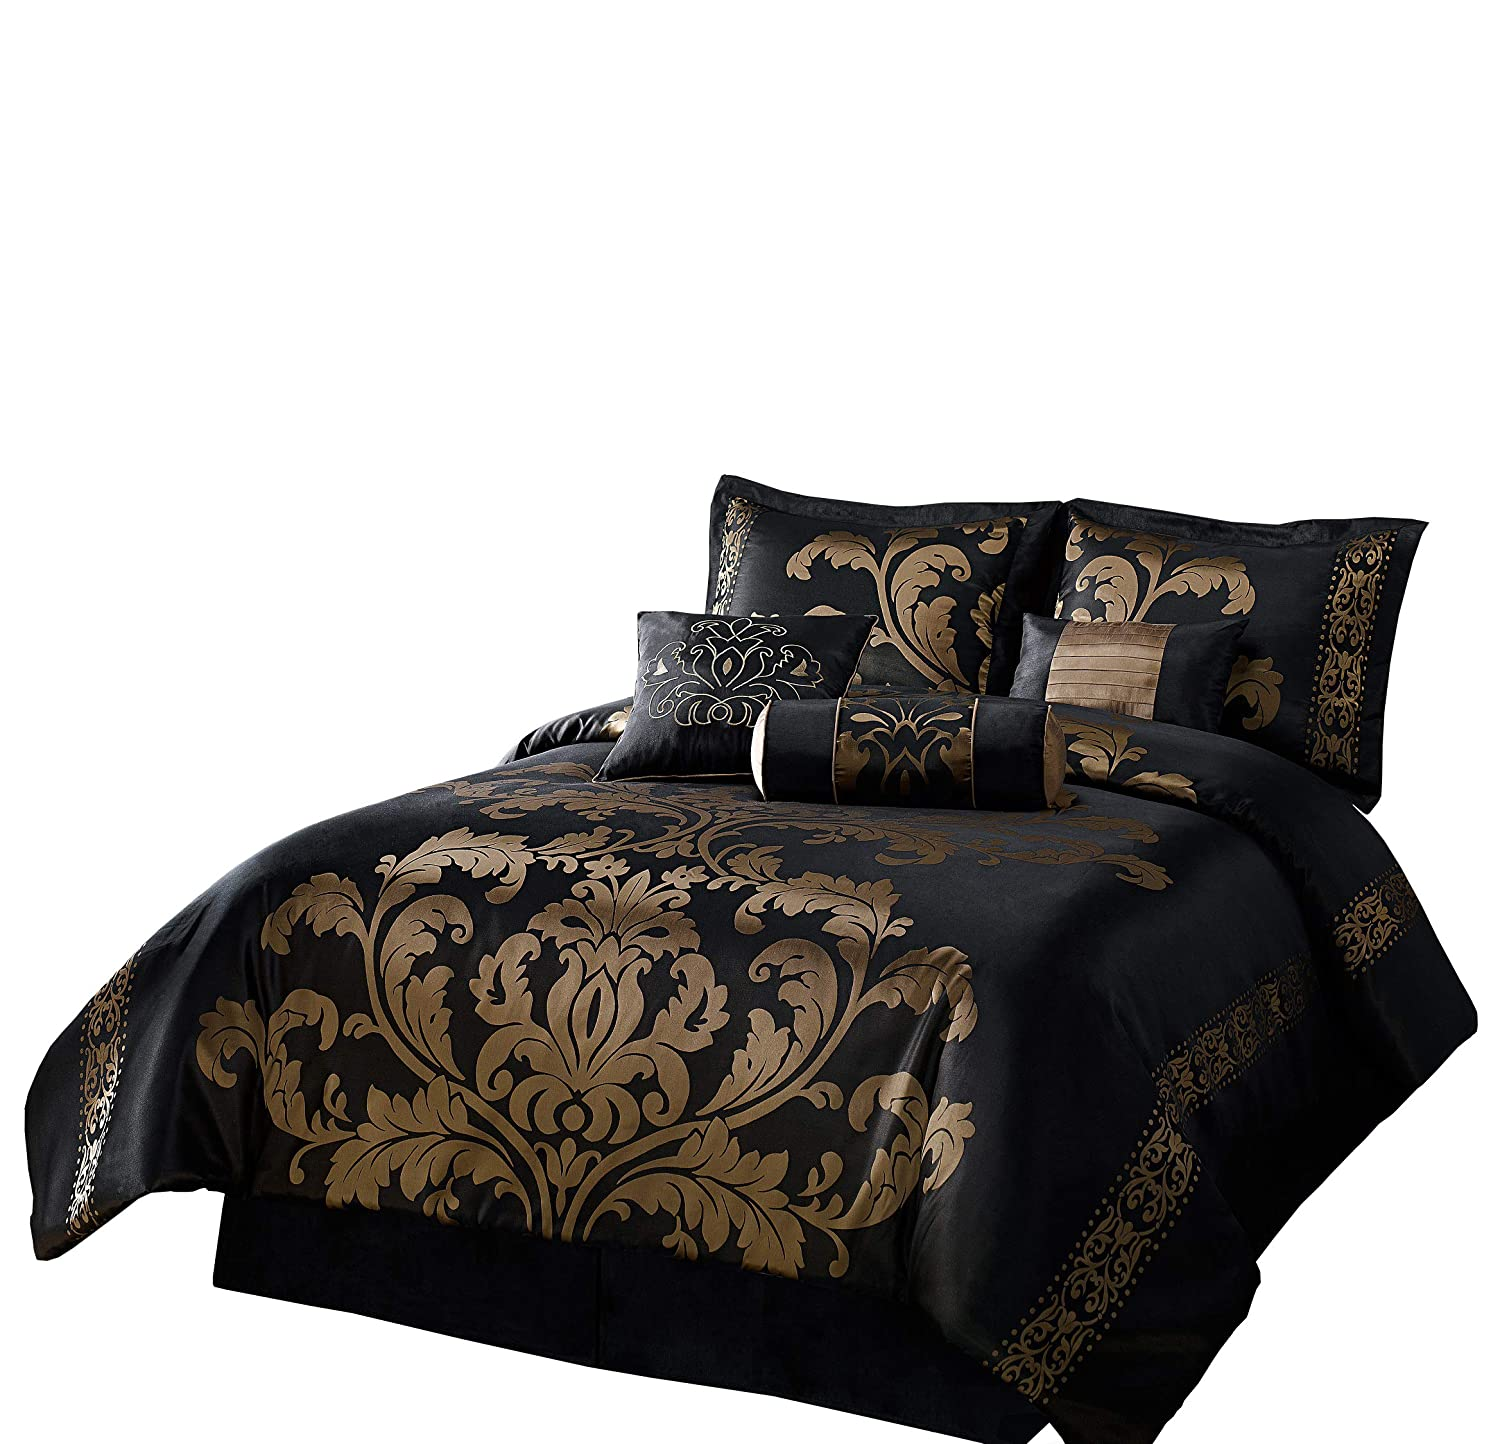 Chezmoi Collection 7-Piece Jacquard Floral Comforter Set Bed-in-a-Bag Set, Queen, Black Gold